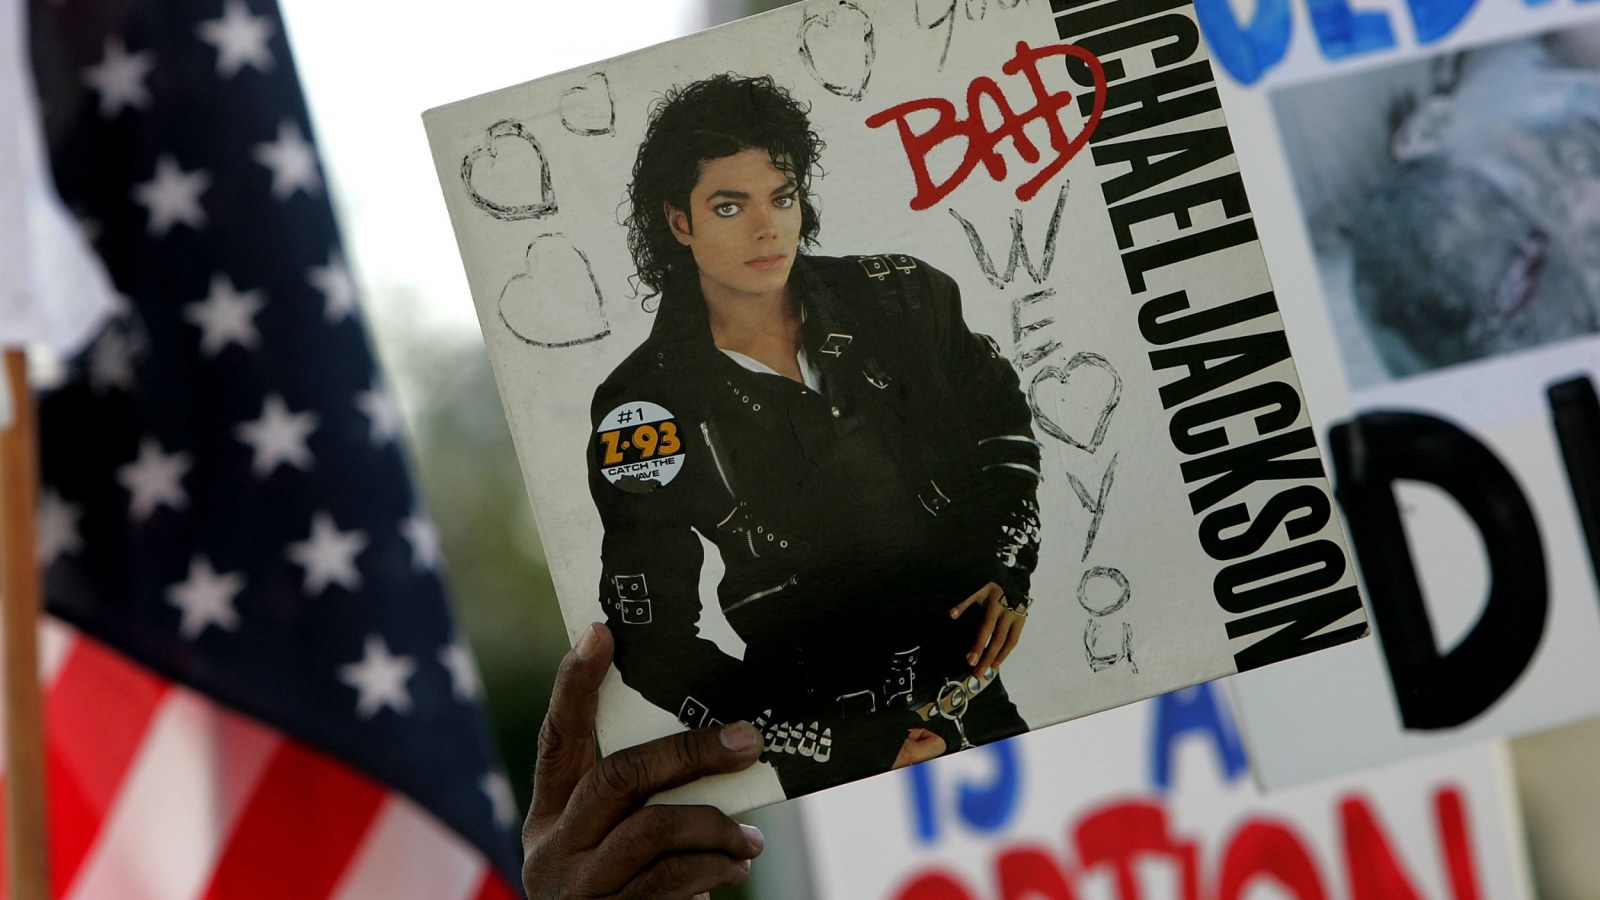 Michael Jackson's 'Bad' at 30: Every Song, Ranked From Best